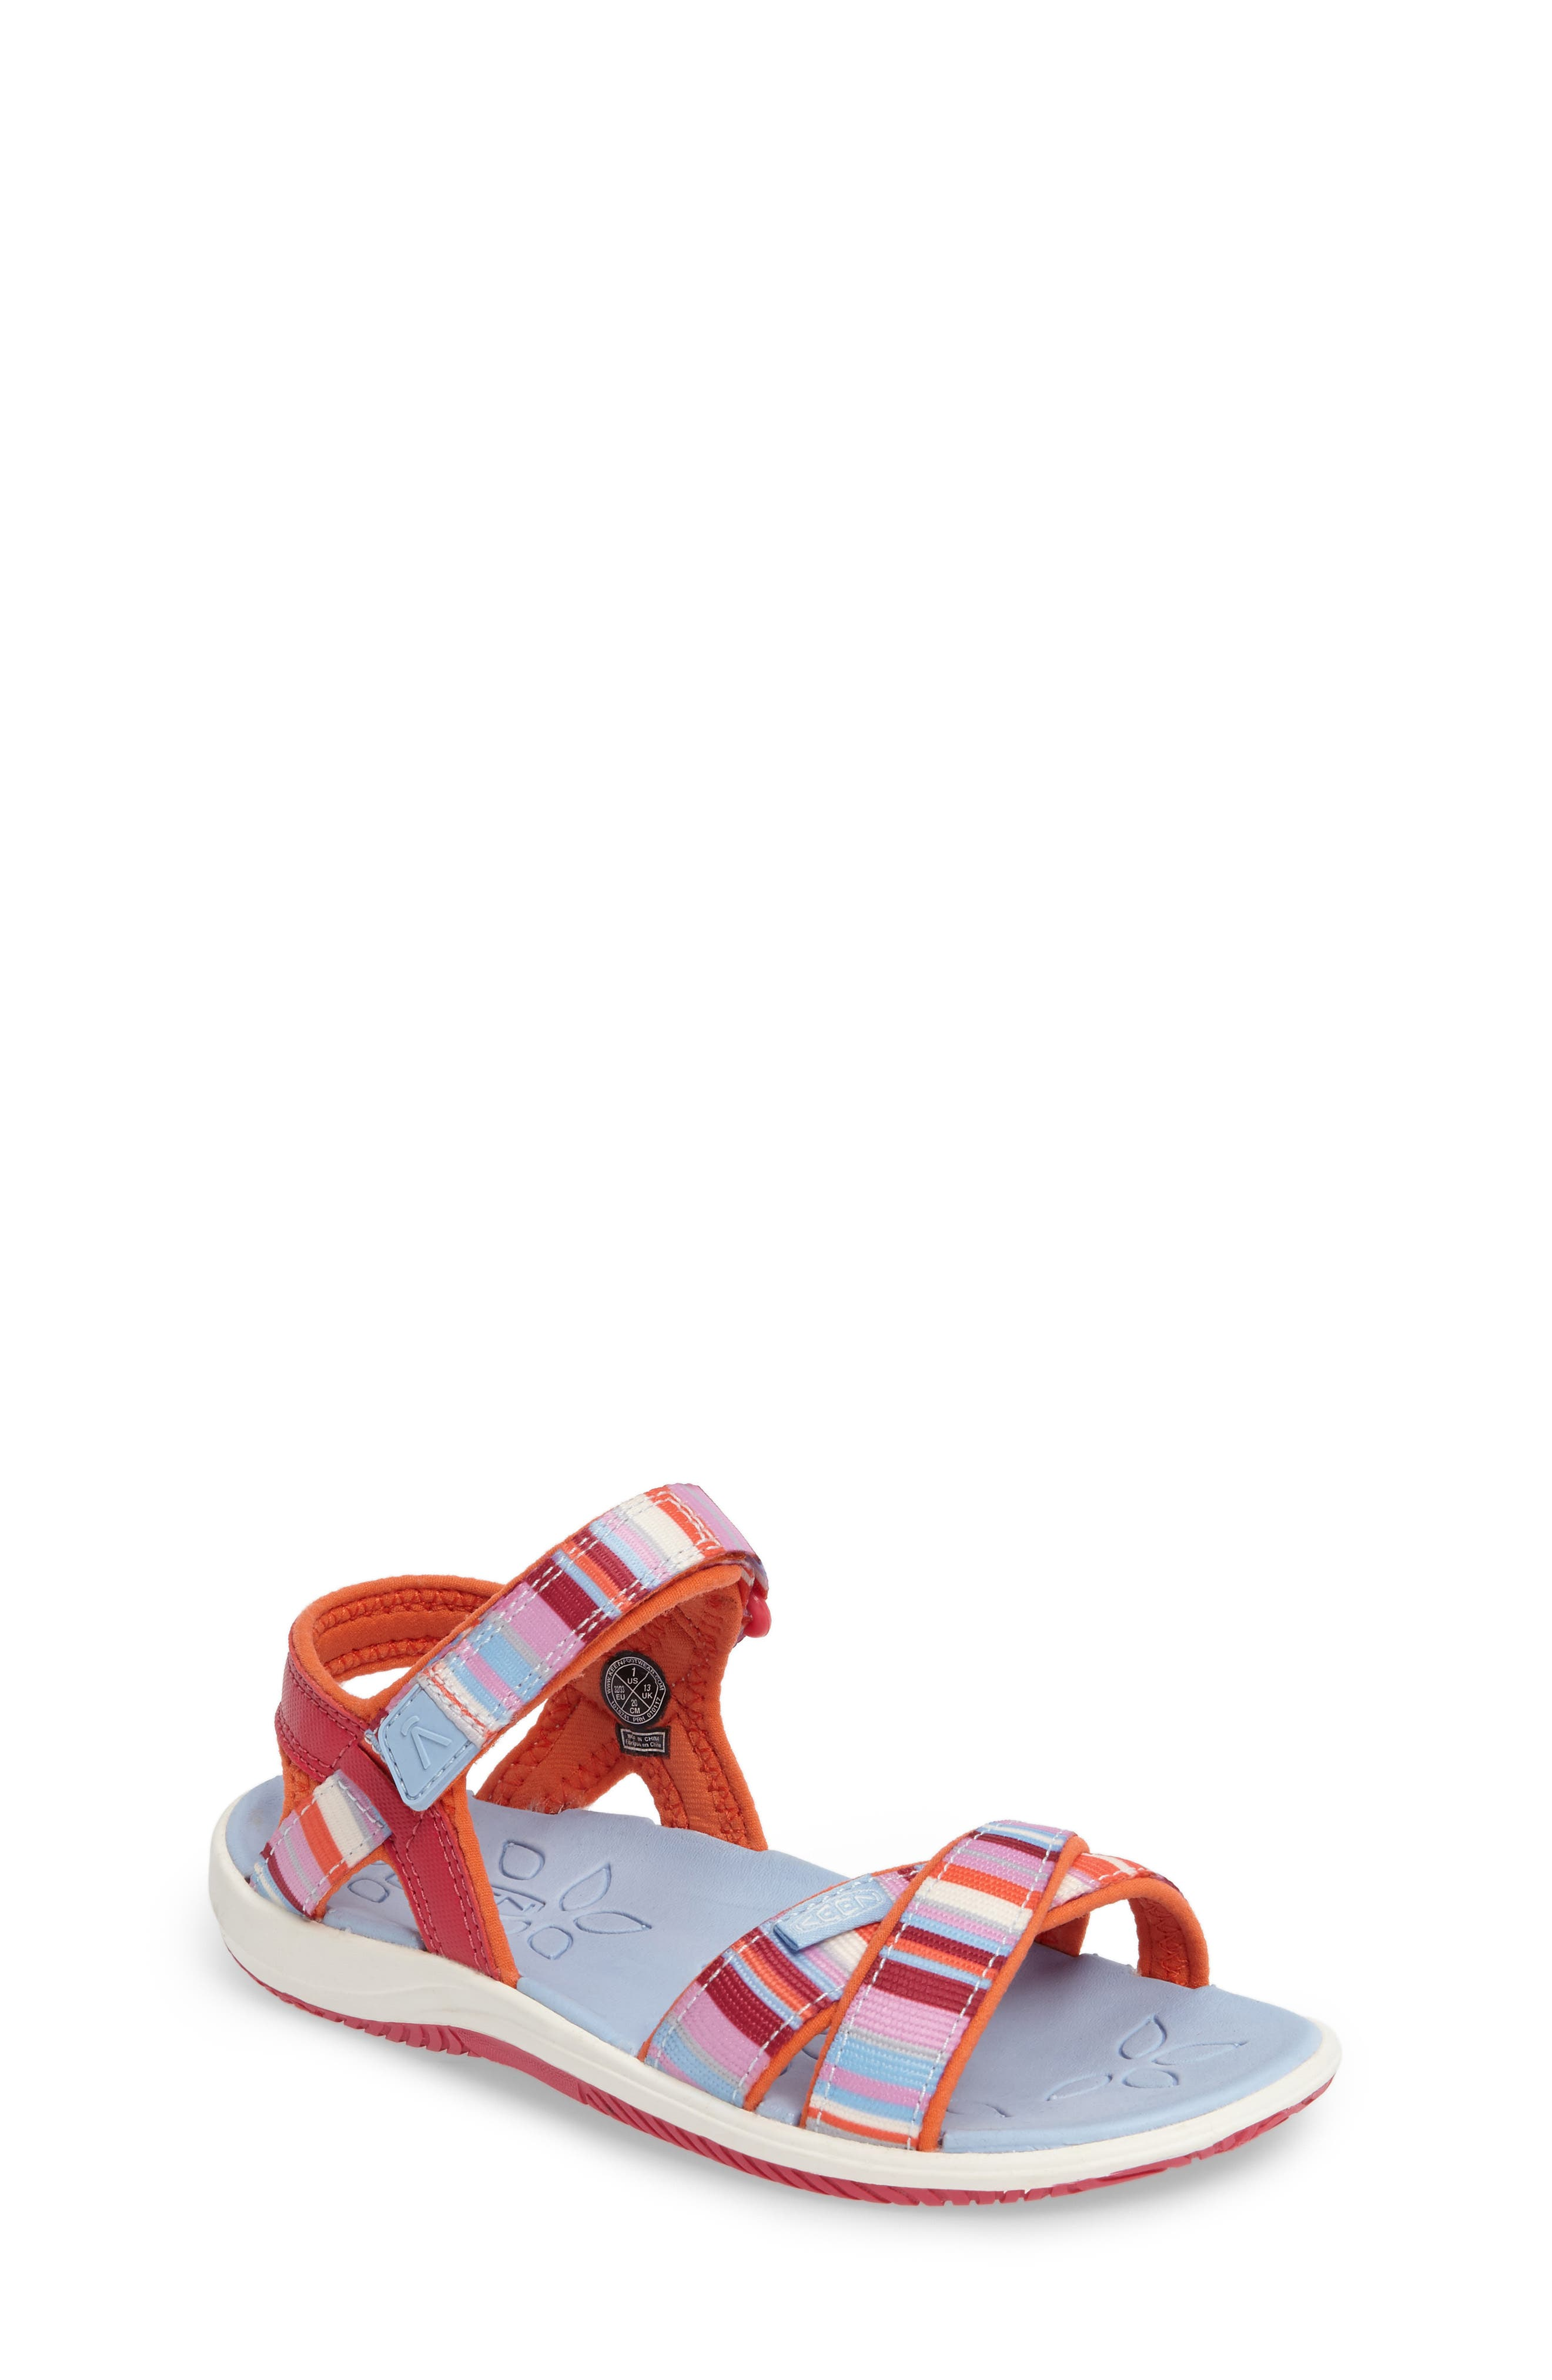 'Phoebe' Sandal,                         Main,                         color, Bright Rose Raya